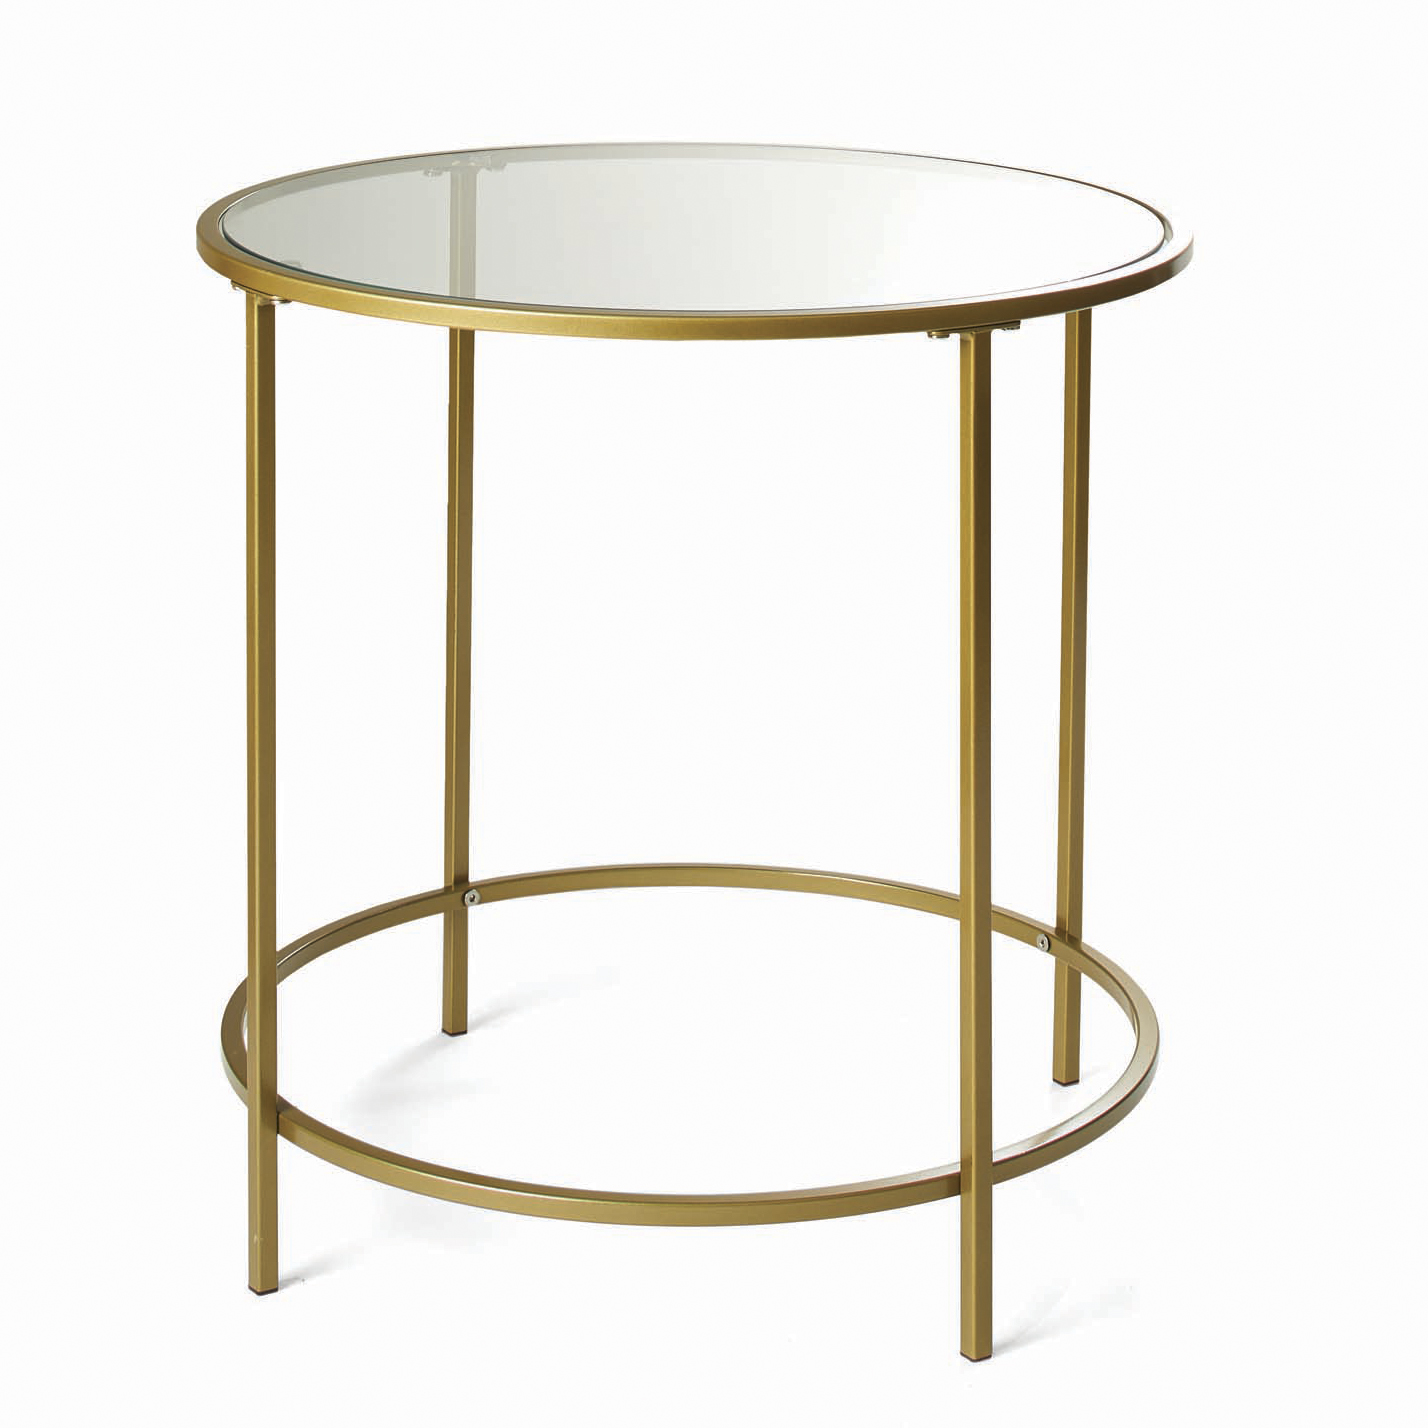 Round Glass Bedside Table Details About Round Glass Side Table Metal Gold Frame End Bedside Tables Accent Living Room